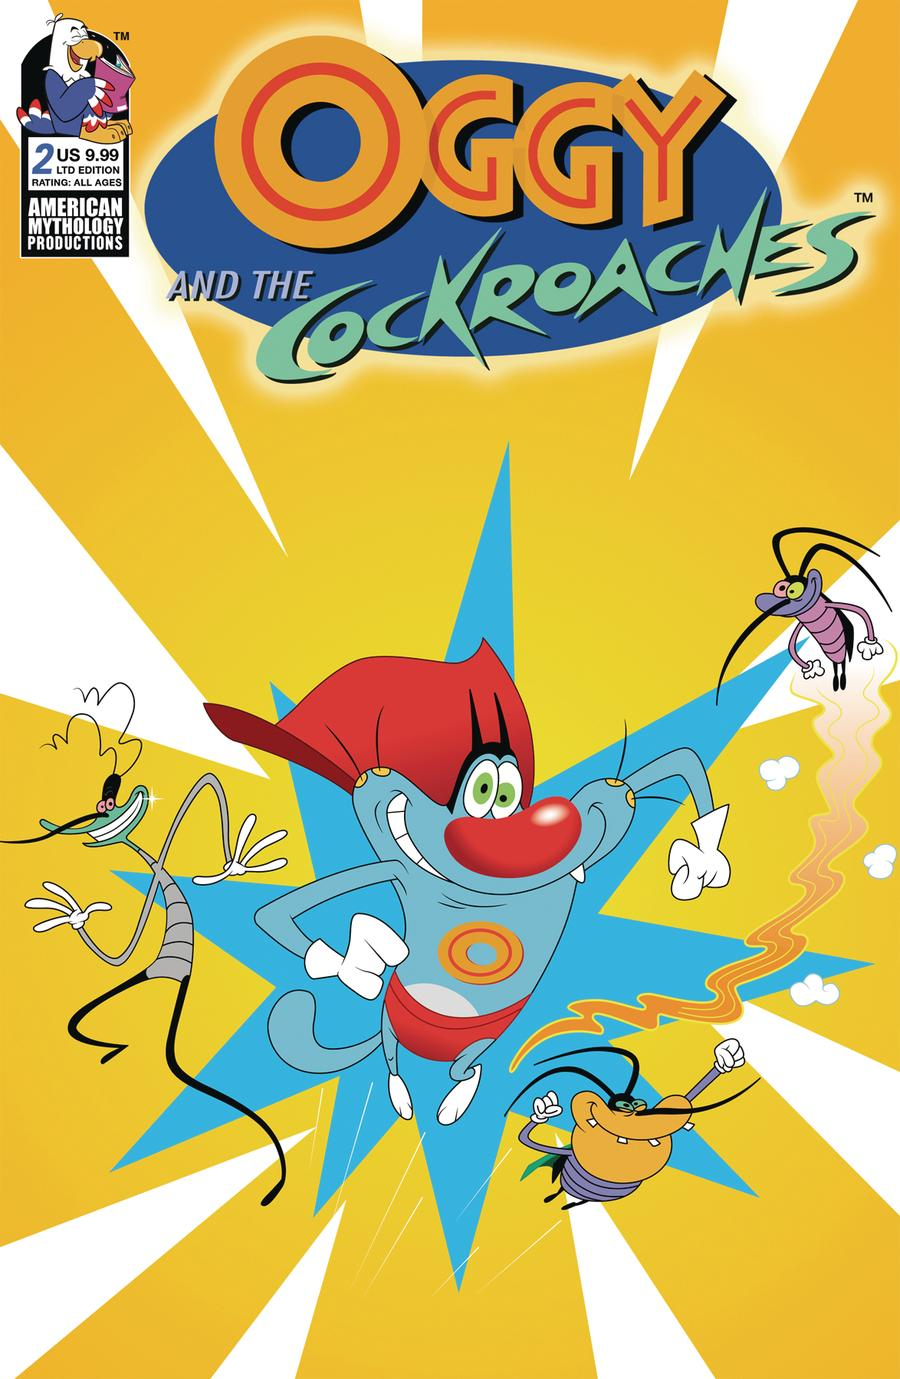 Oggy And The Cockroaches #2 Cover C Limited Edition Animation Cel Variant Cover